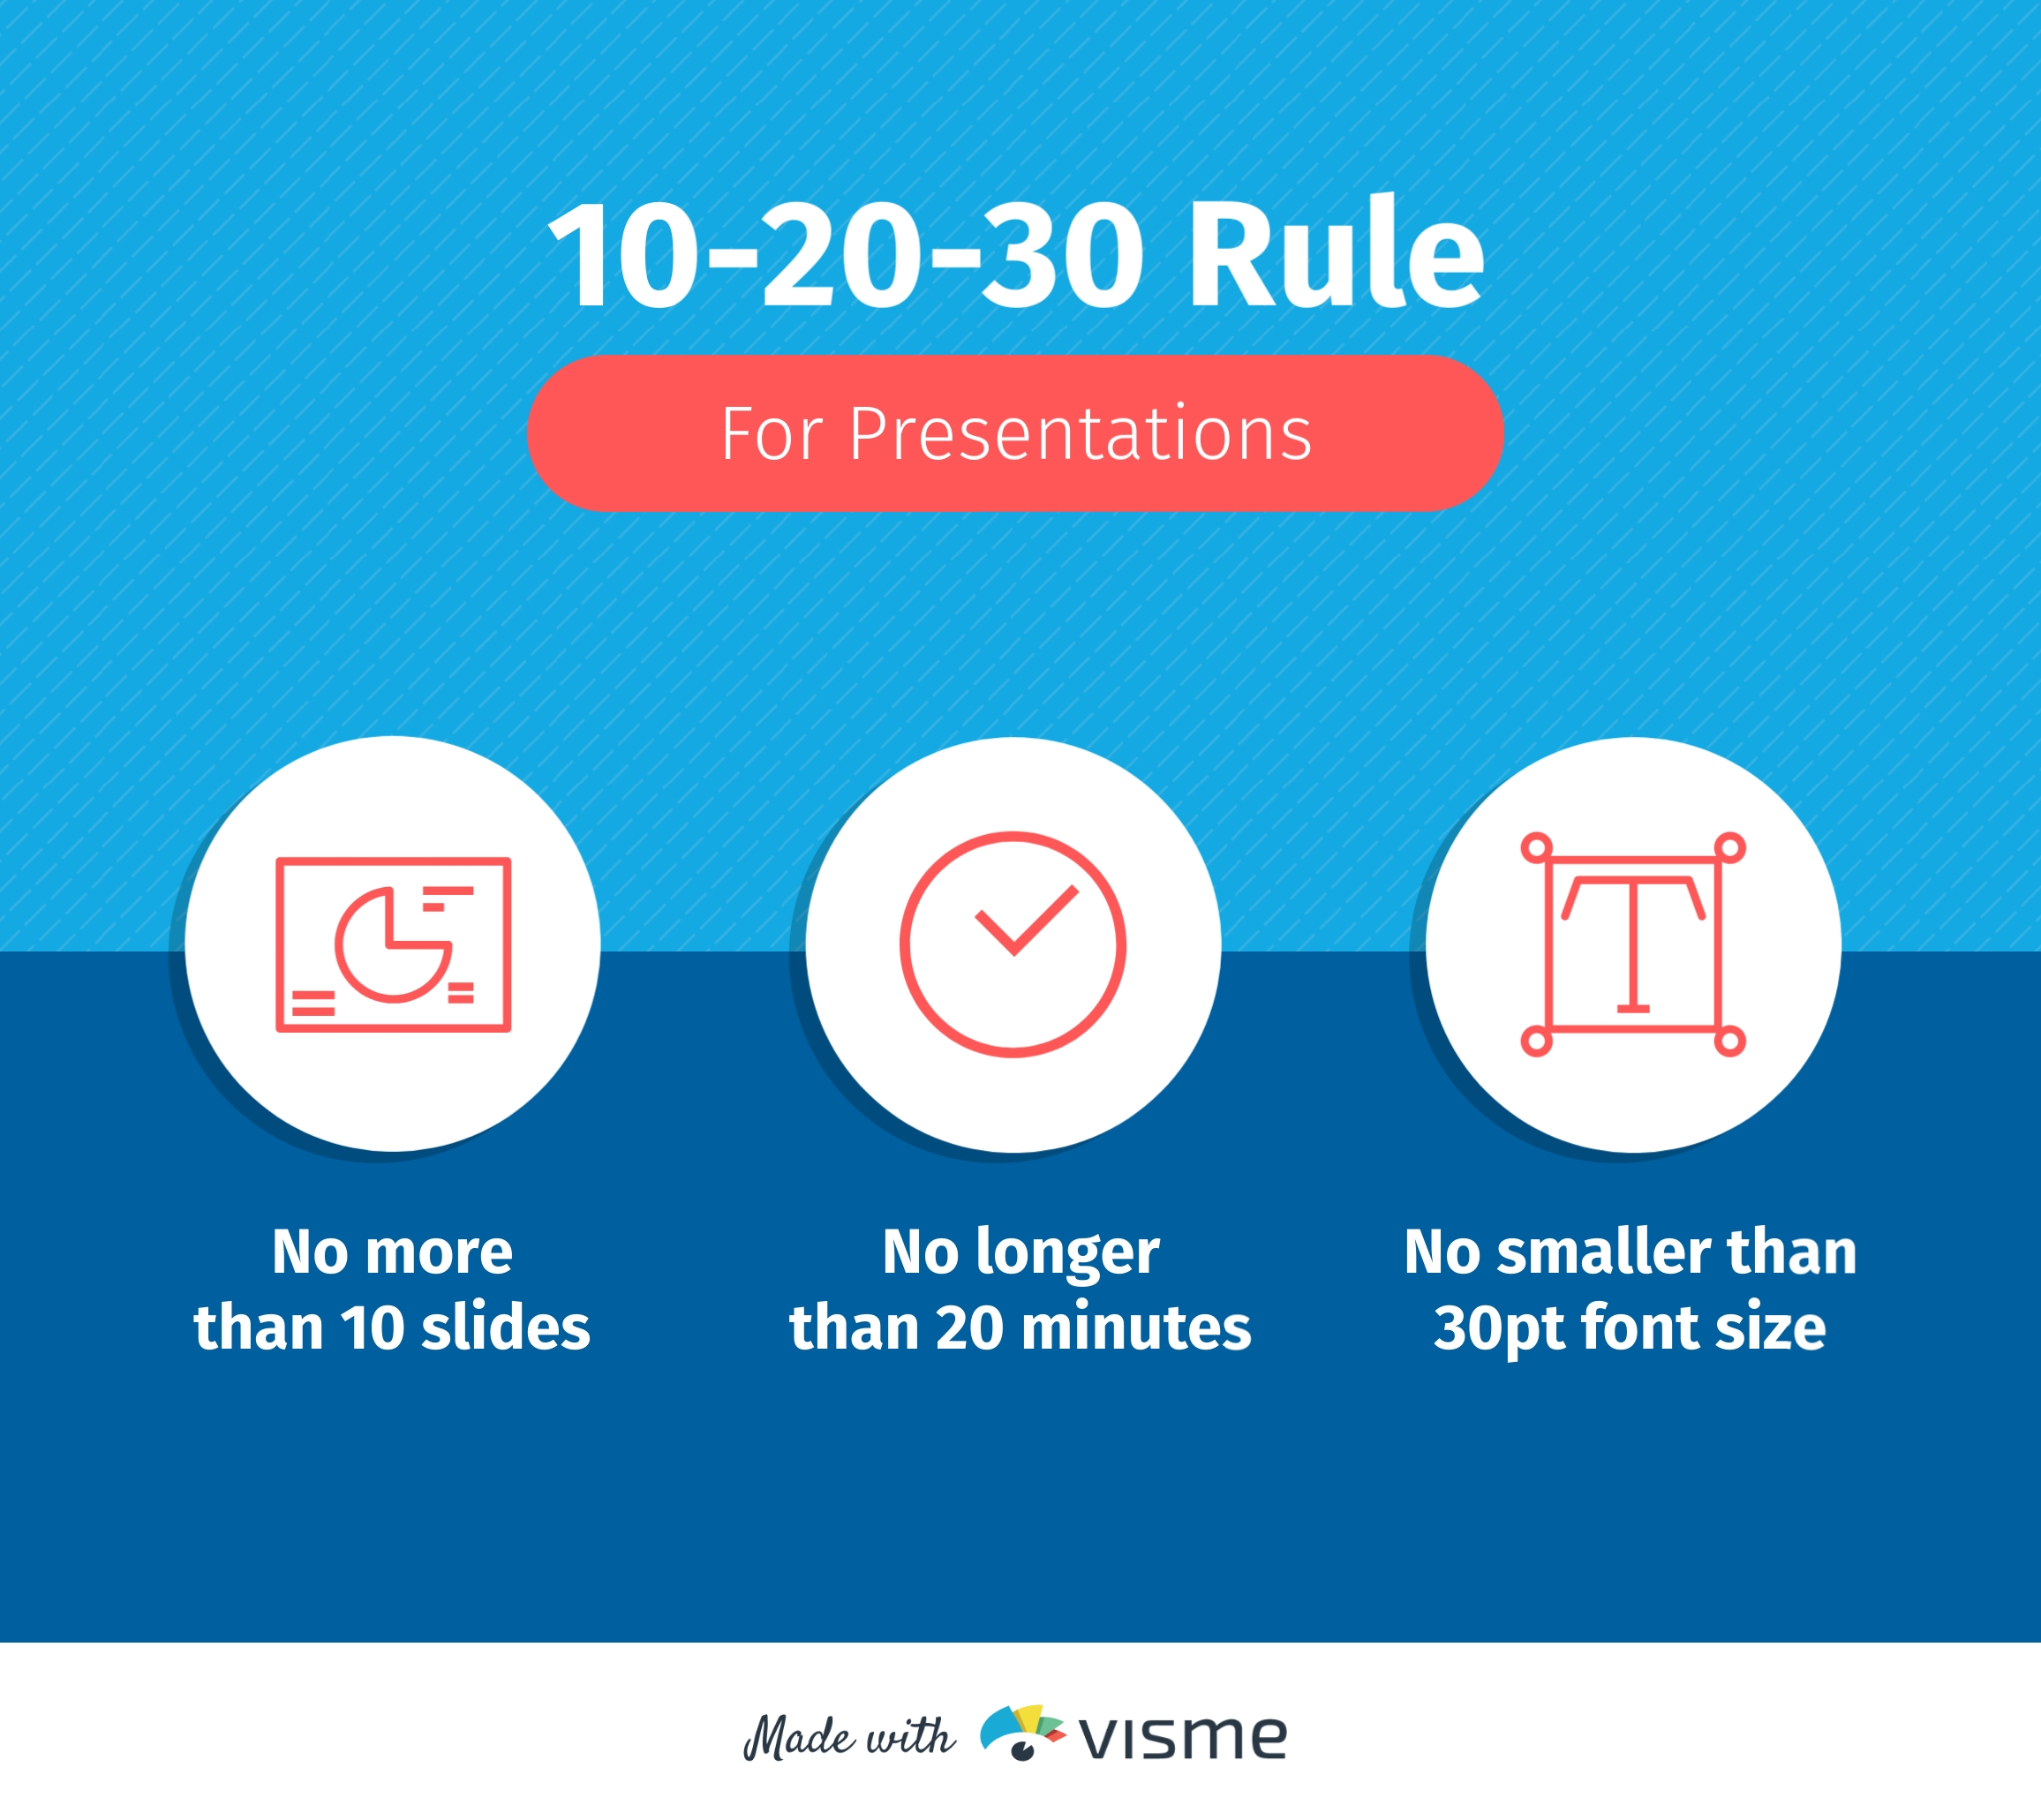 business plan presentation - 10-20-30 rule for presentations